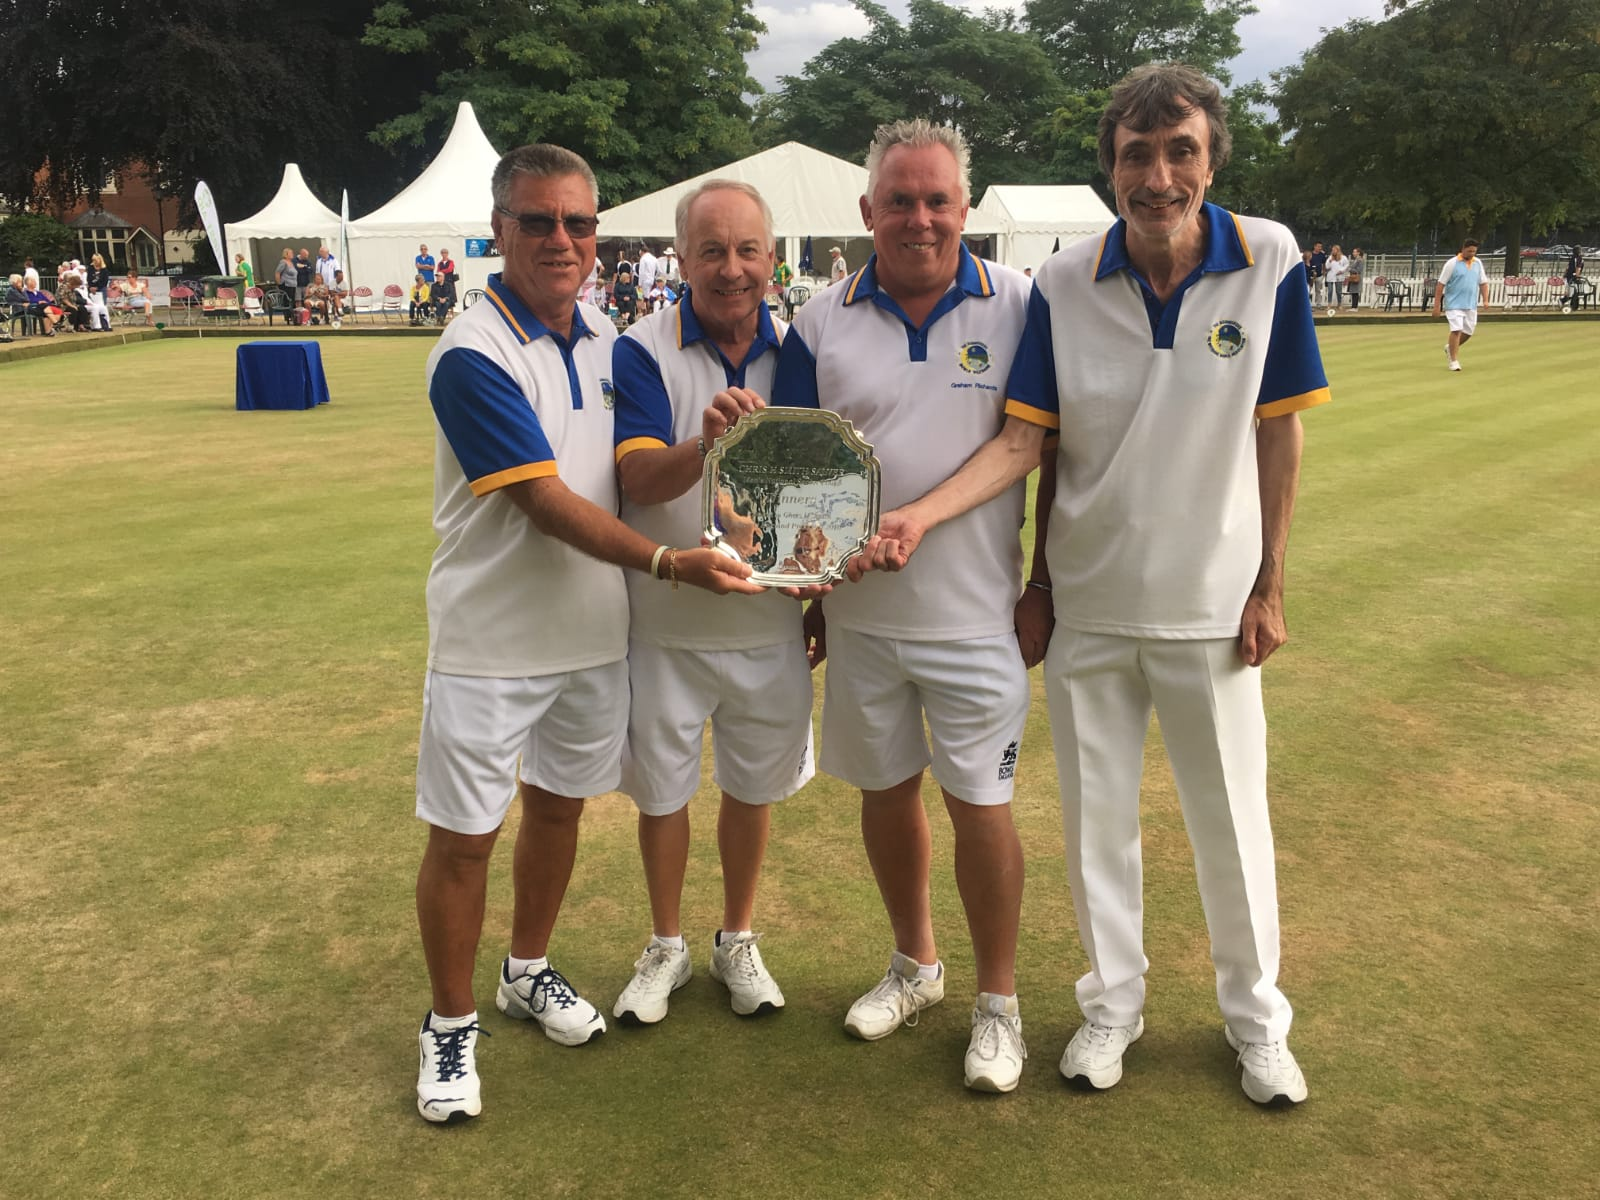 National Senior Fours Winners, Kevin Embling, Graham Richards, Alan Small, Dave Snell